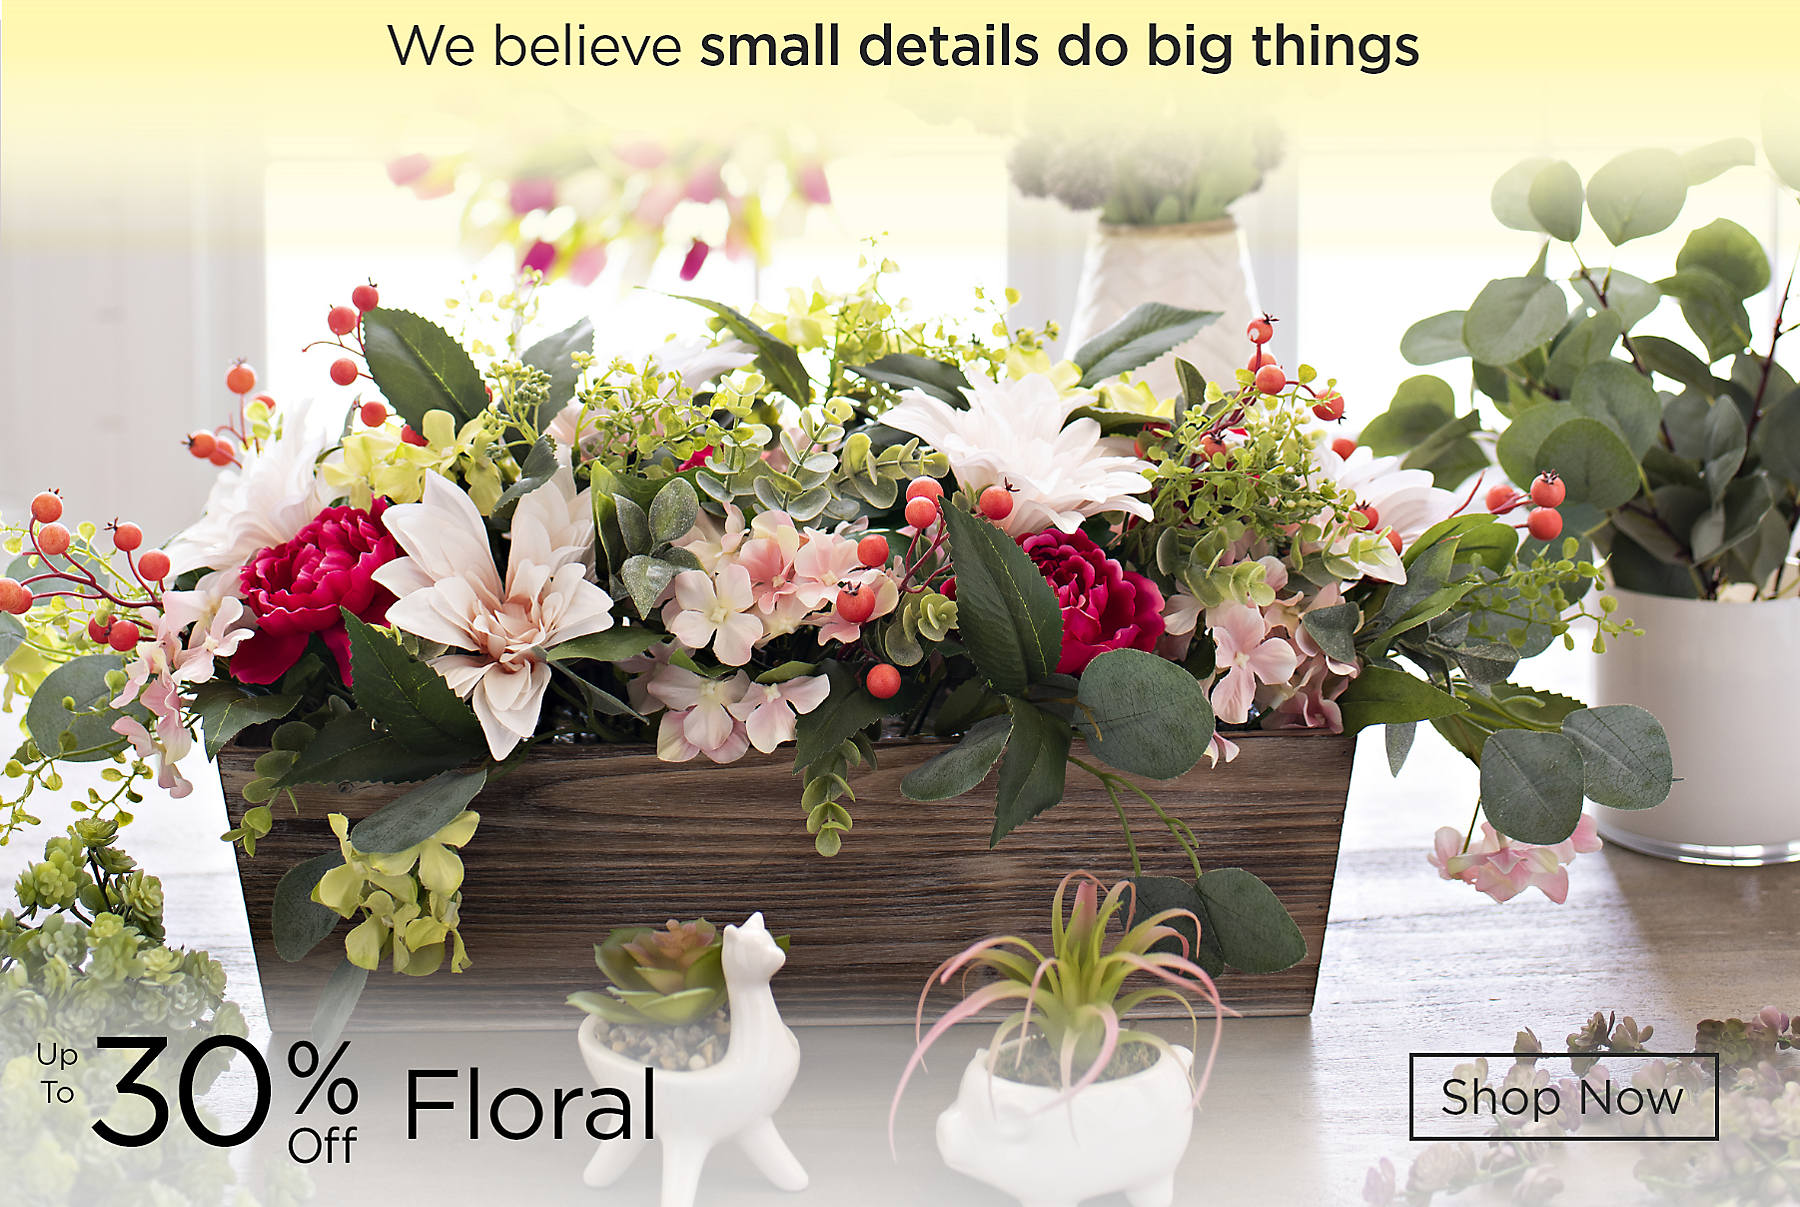 We believe small details do big things Up to 30% Off Floral